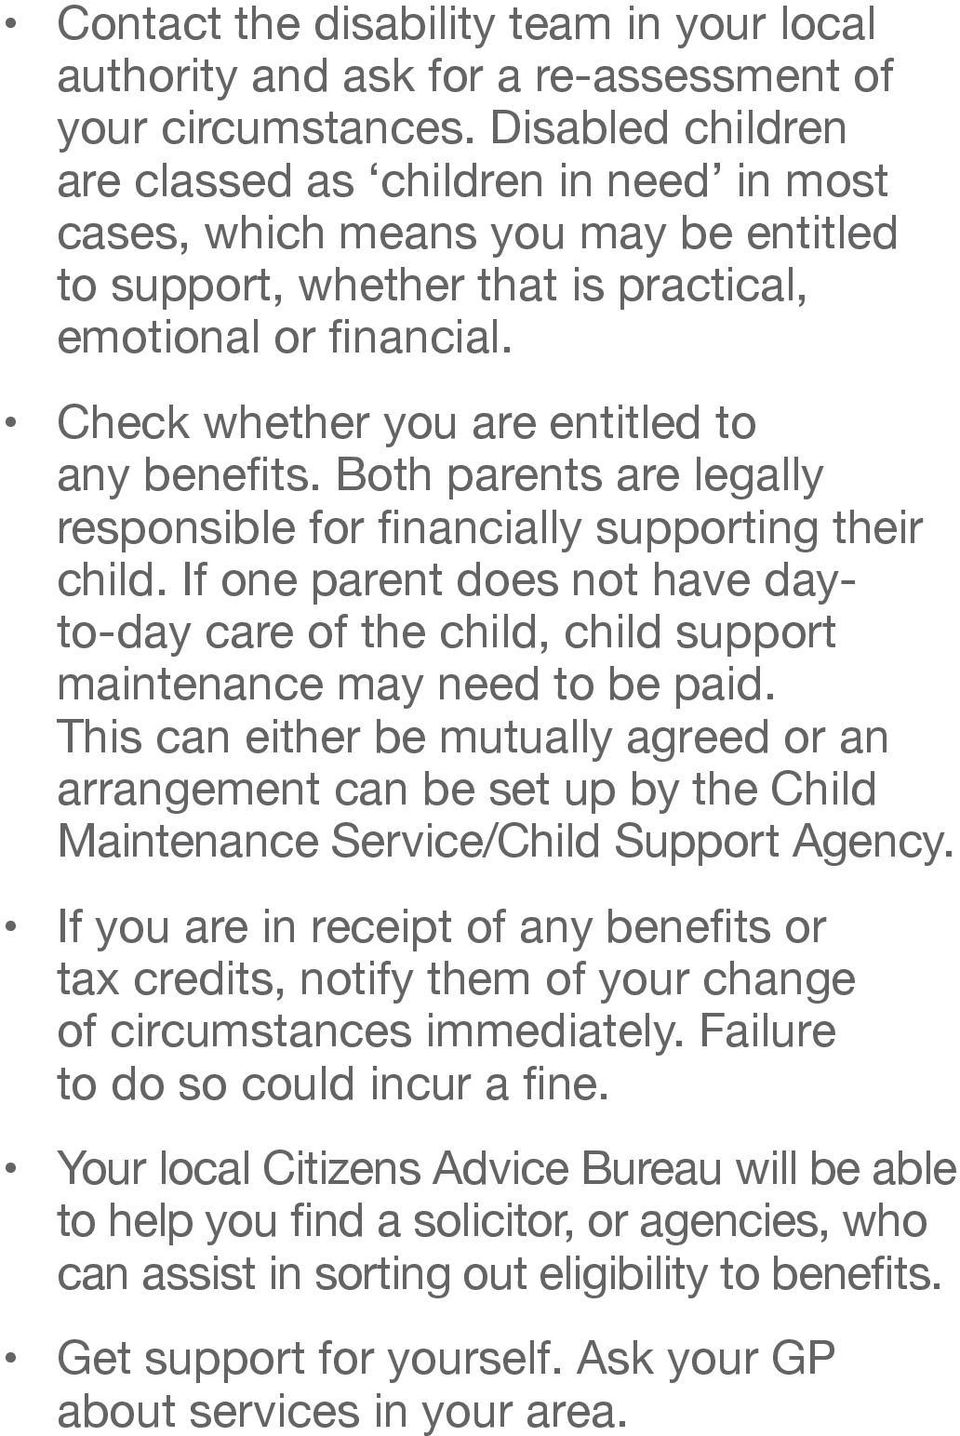 Check whether you are entitled to any benefits. Both parents are legally responsible for financially supporting their child.